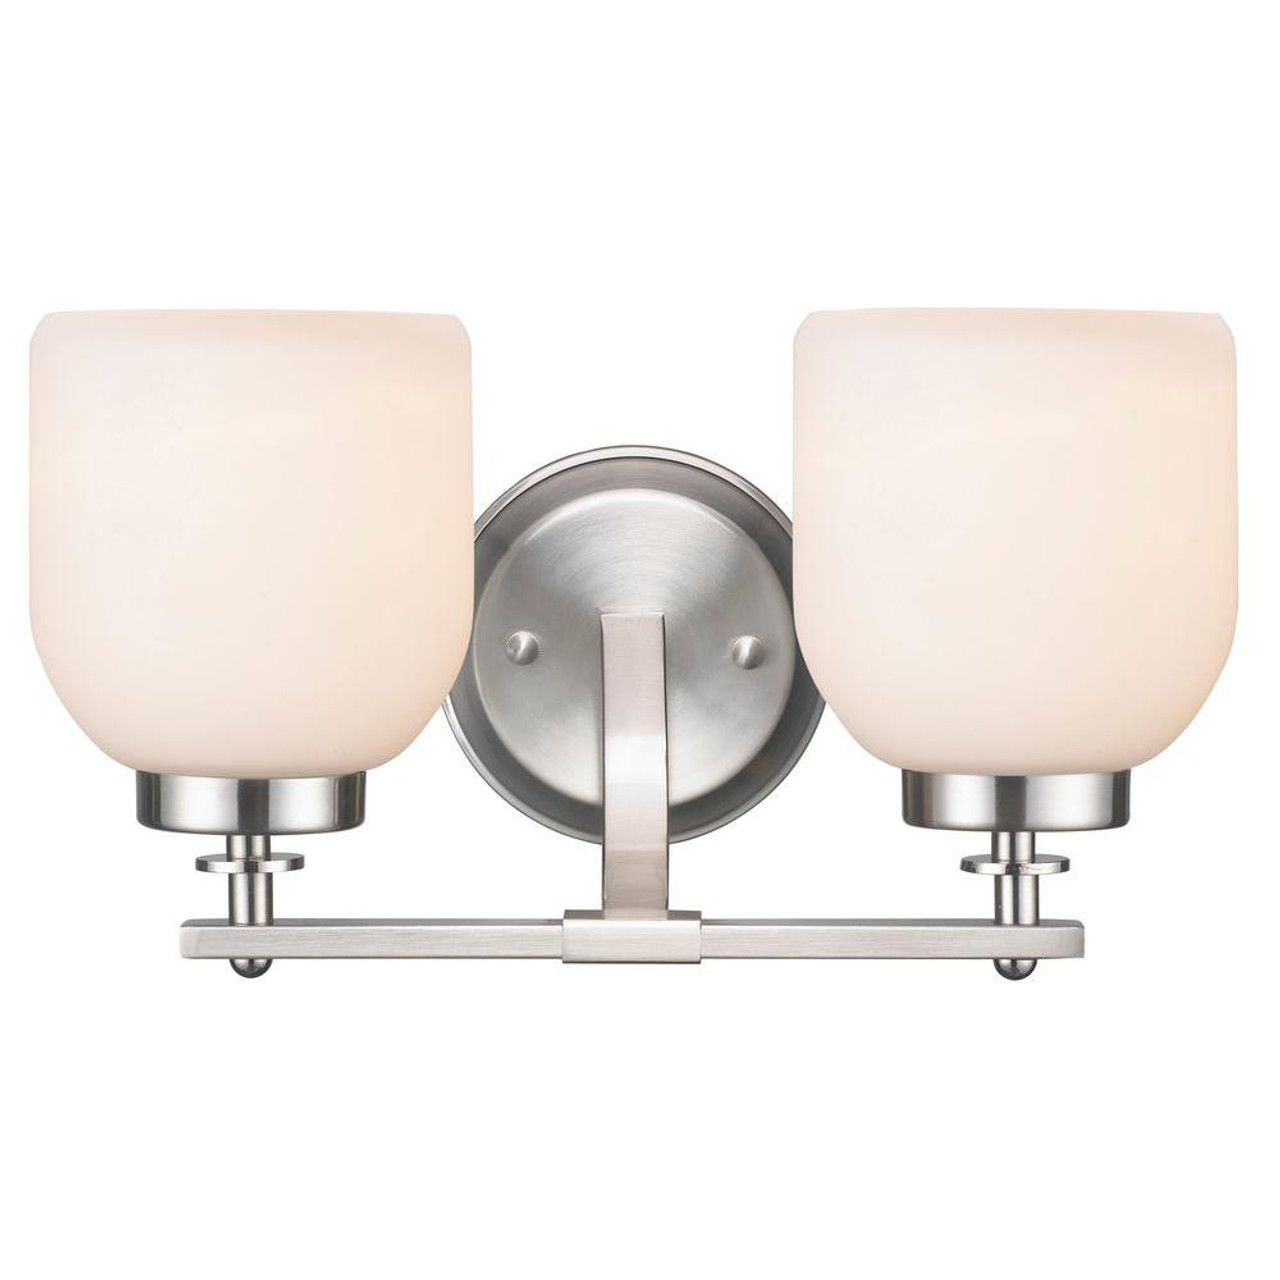 2-Light Brushed Nickel Sconce with White Frosted Glass Shade (WI-642519)